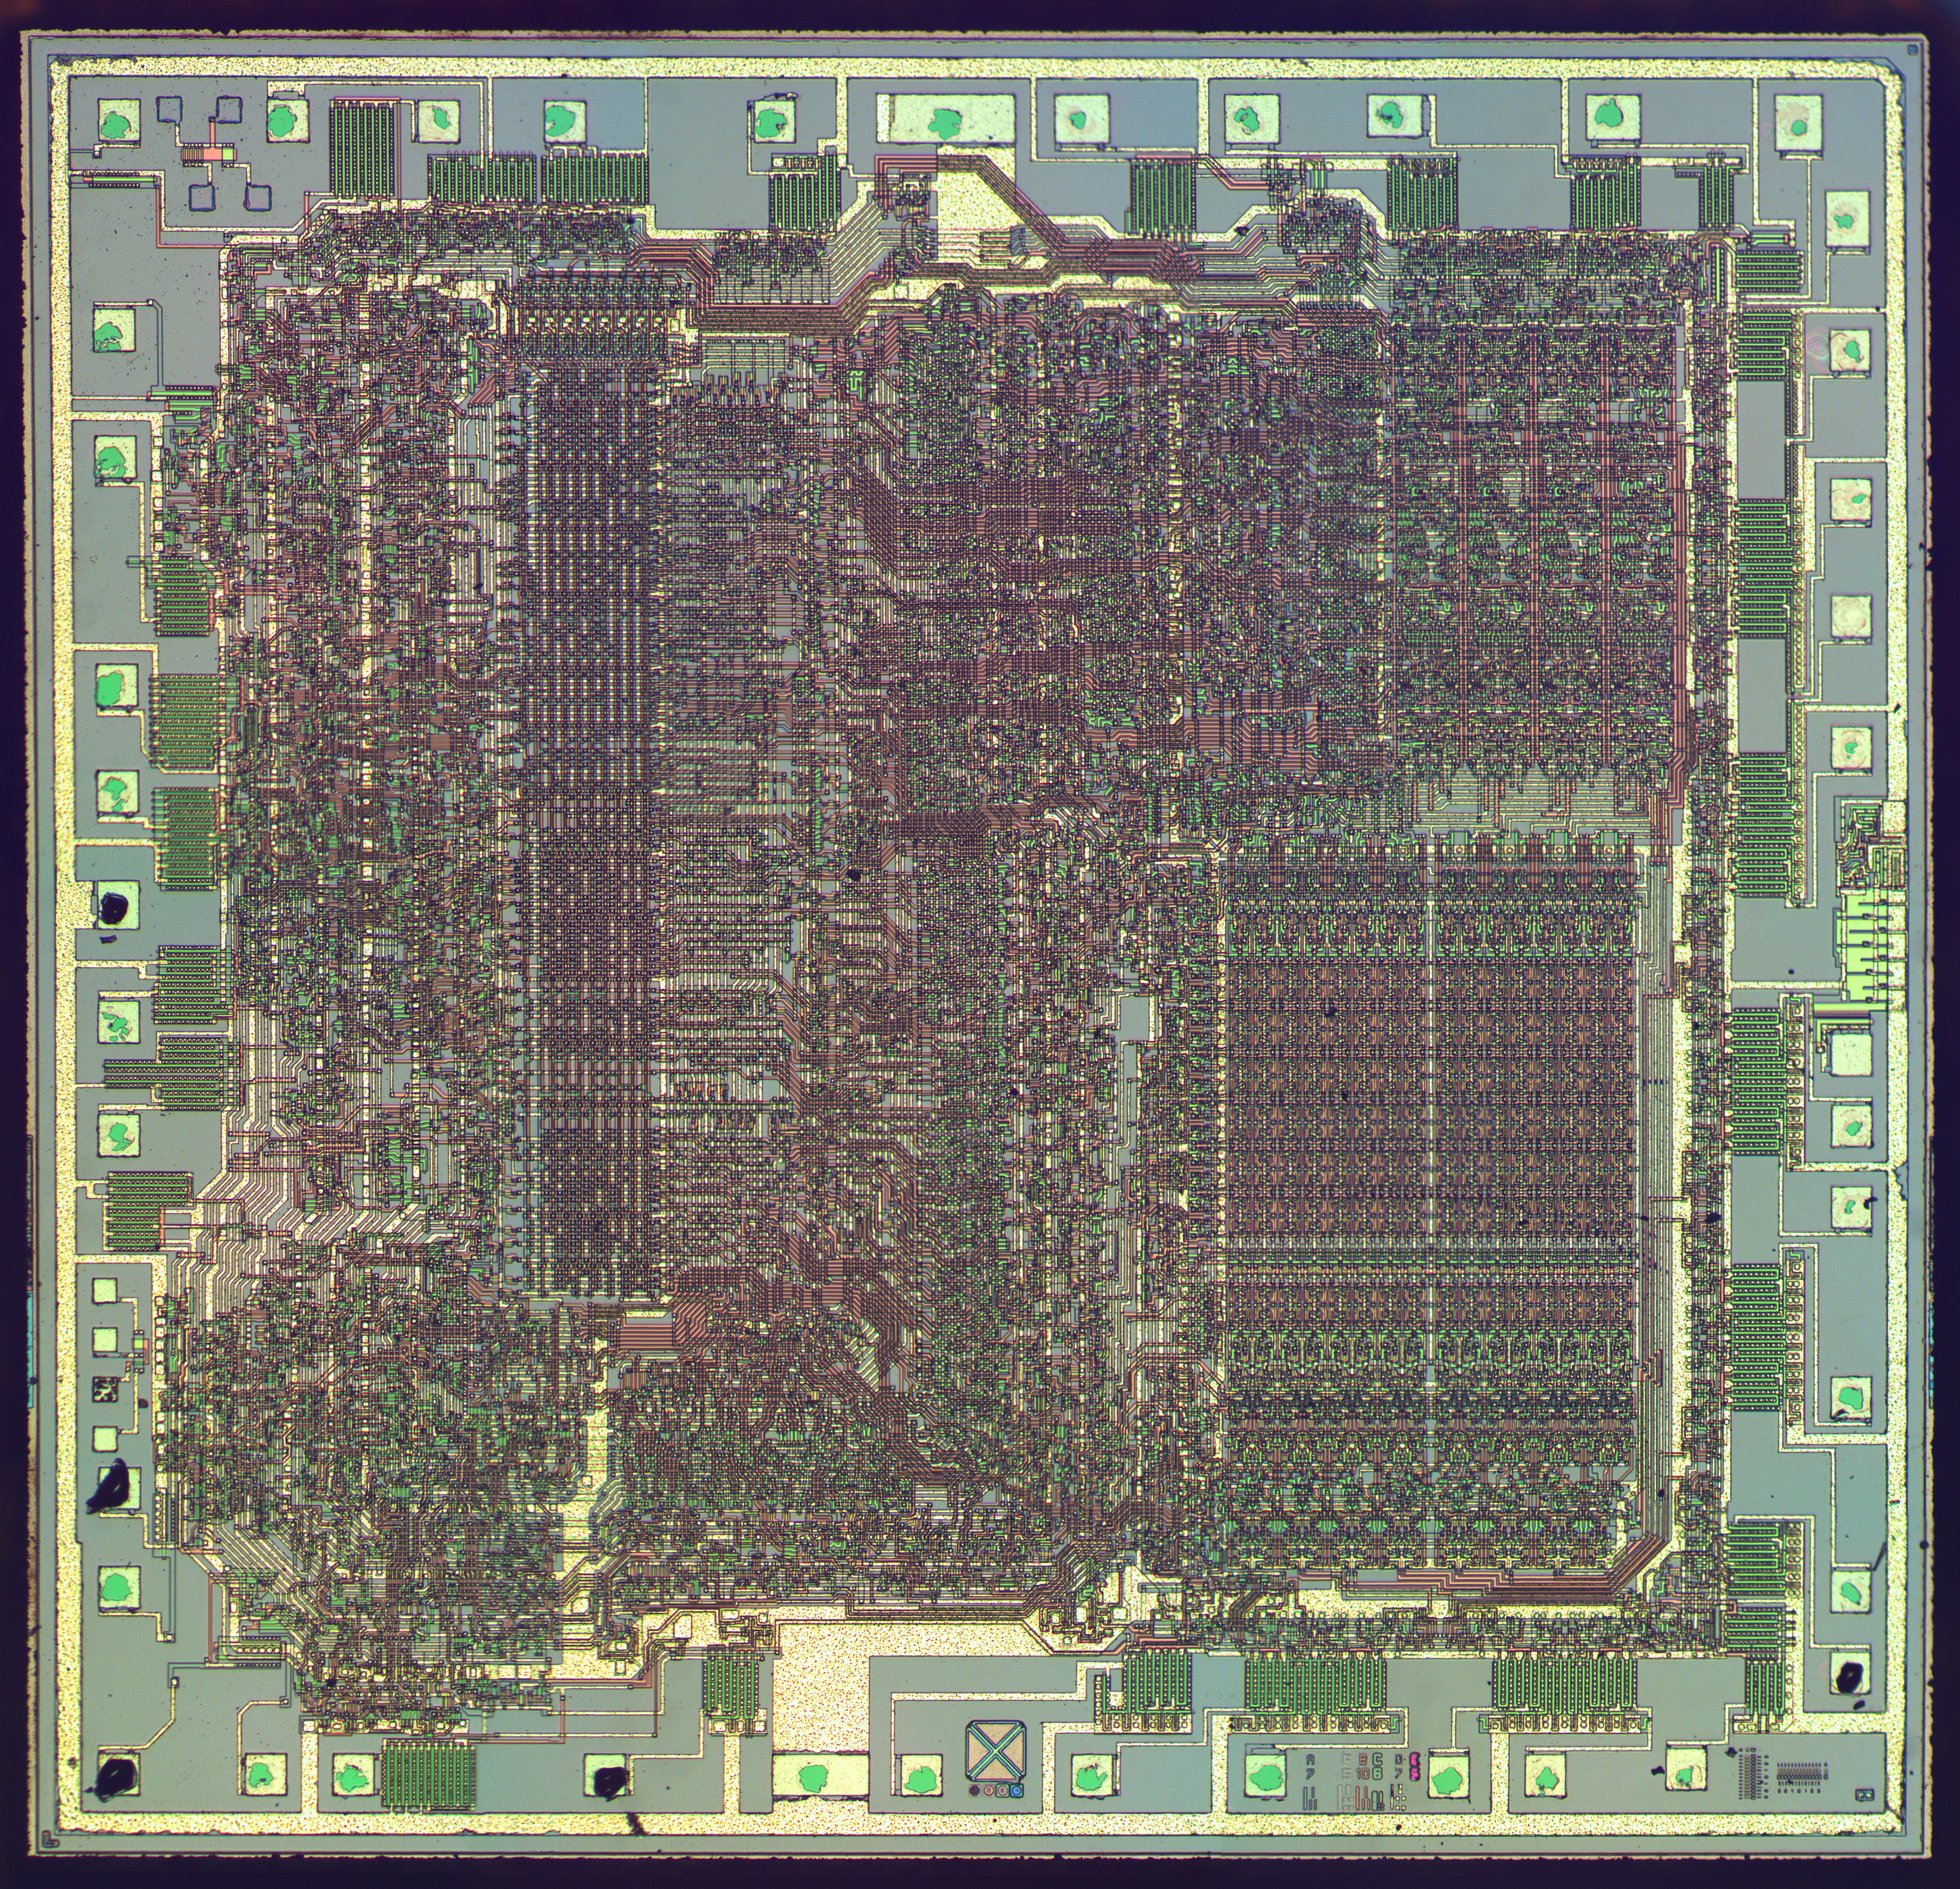 Filez80a Hd Wikimedia Commons The History Of Integrated Circuits And Microchips Thumbnail For Version As 0605 9 March 2013